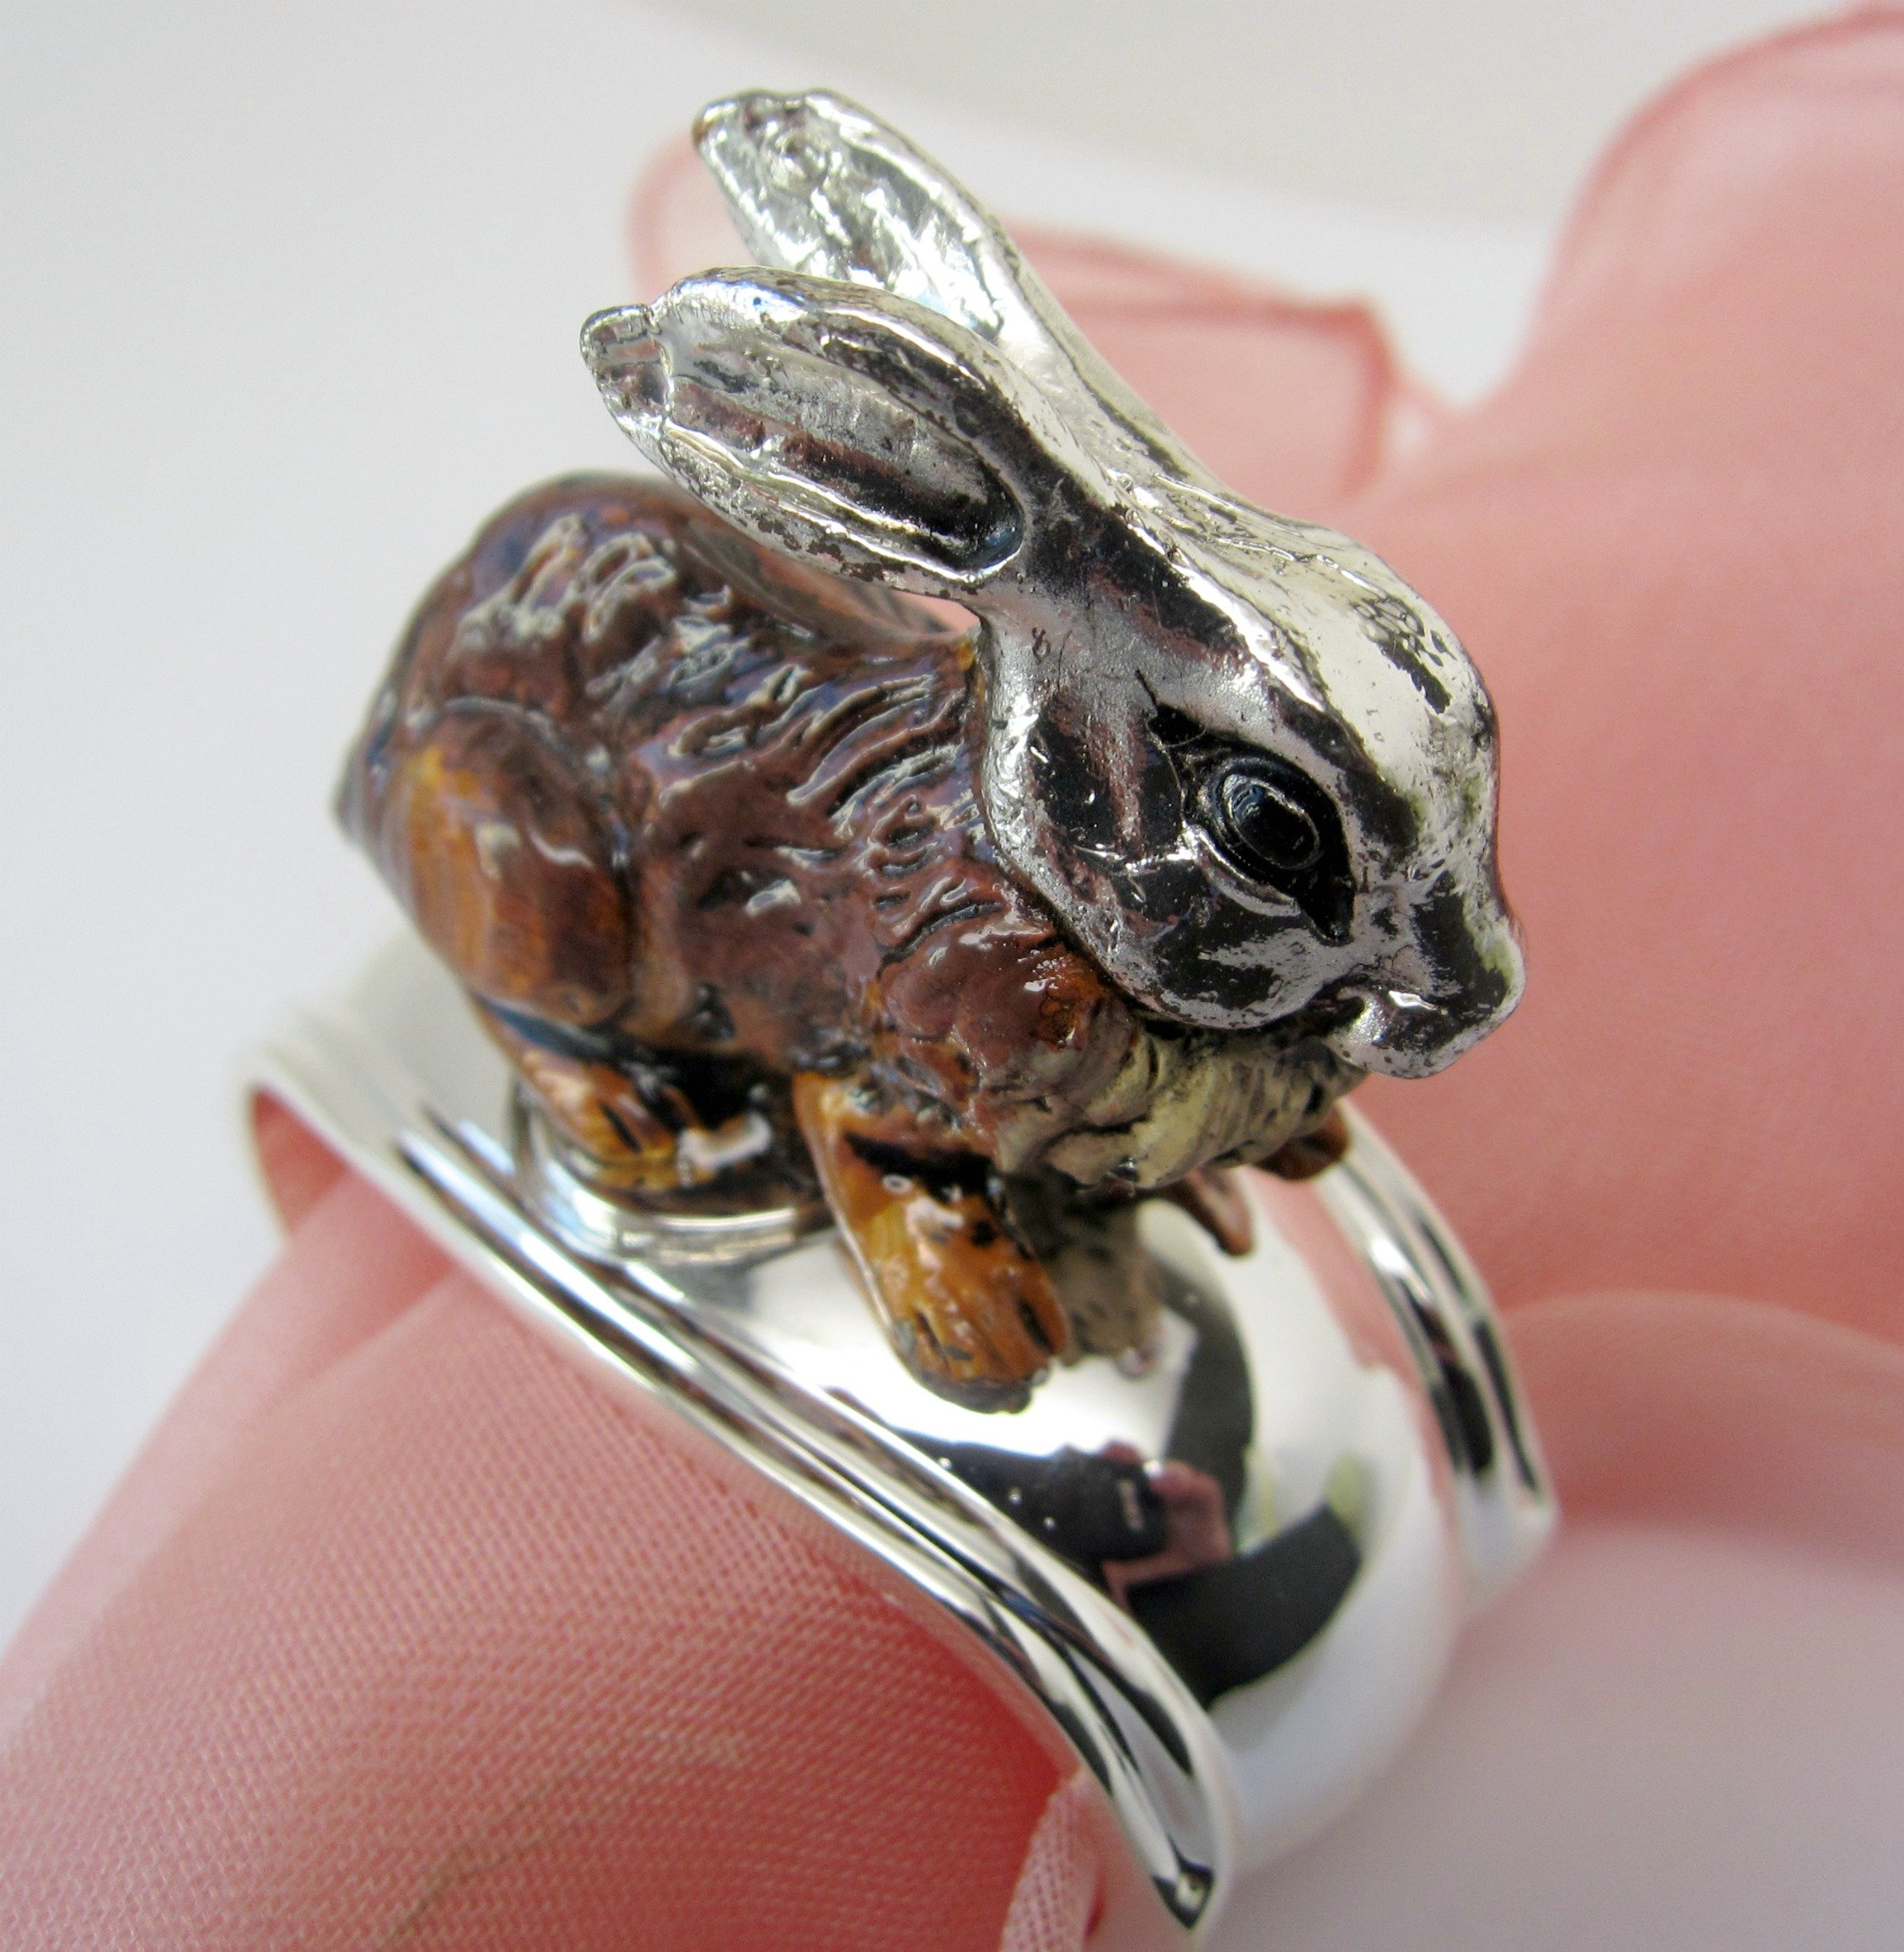 Hans Turnwald Set 4 Rabbit Bunny Signed Silverplate Figural Napkin Rings Easter Gift Box by Hans Turnwald (Image #3)